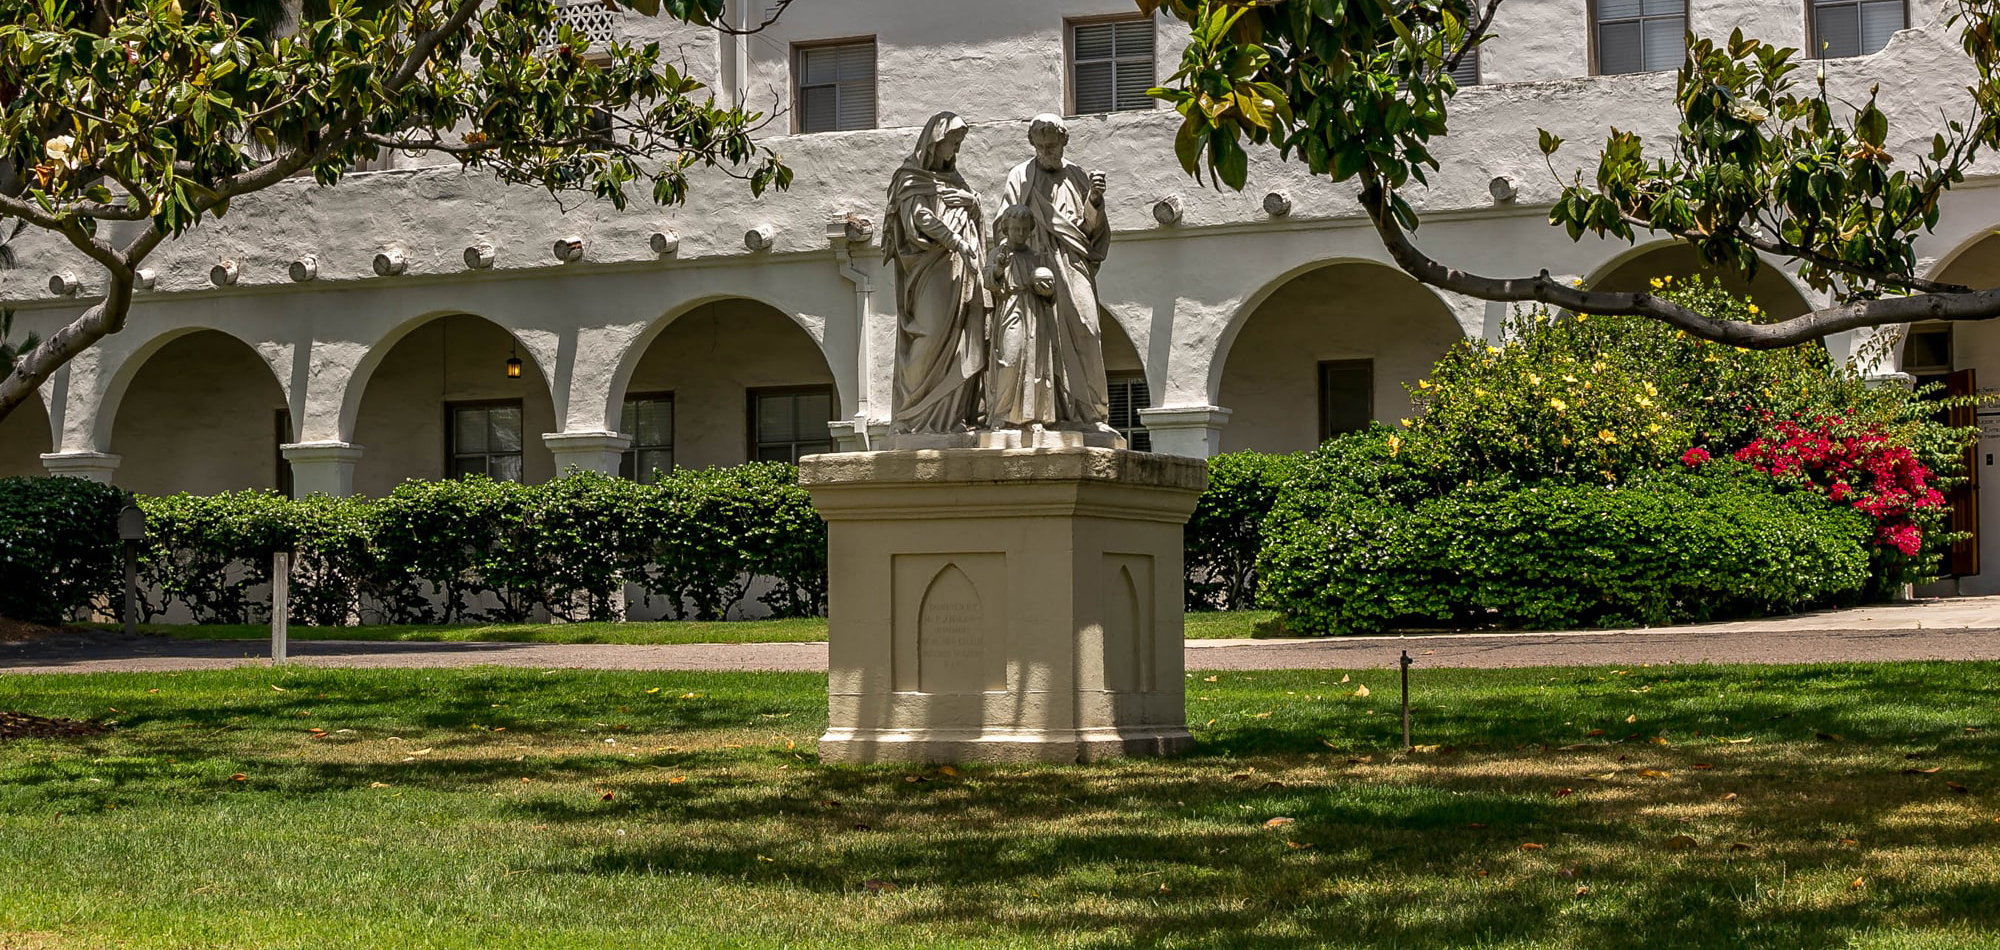 front view of Nazareth School of San Diego with religious statue in front